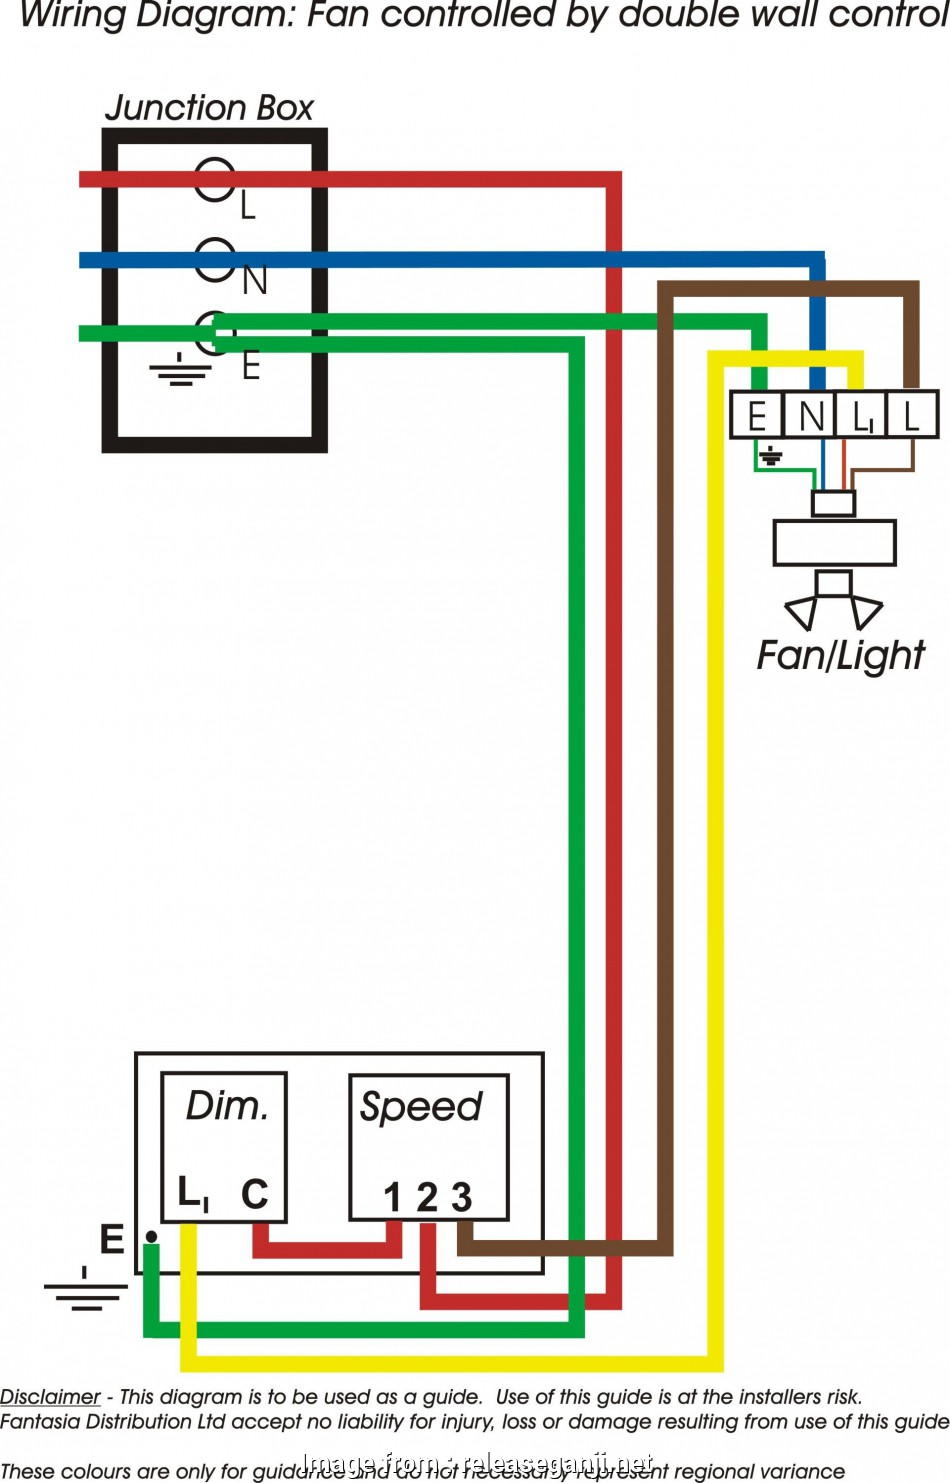 how to wire a ceiling fan with 2 light switches Wiring Diagram, Light With, Switches Best Ceiling, Fair A 13 New How To Wire A Ceiling, With 2 Light Switches Pictures